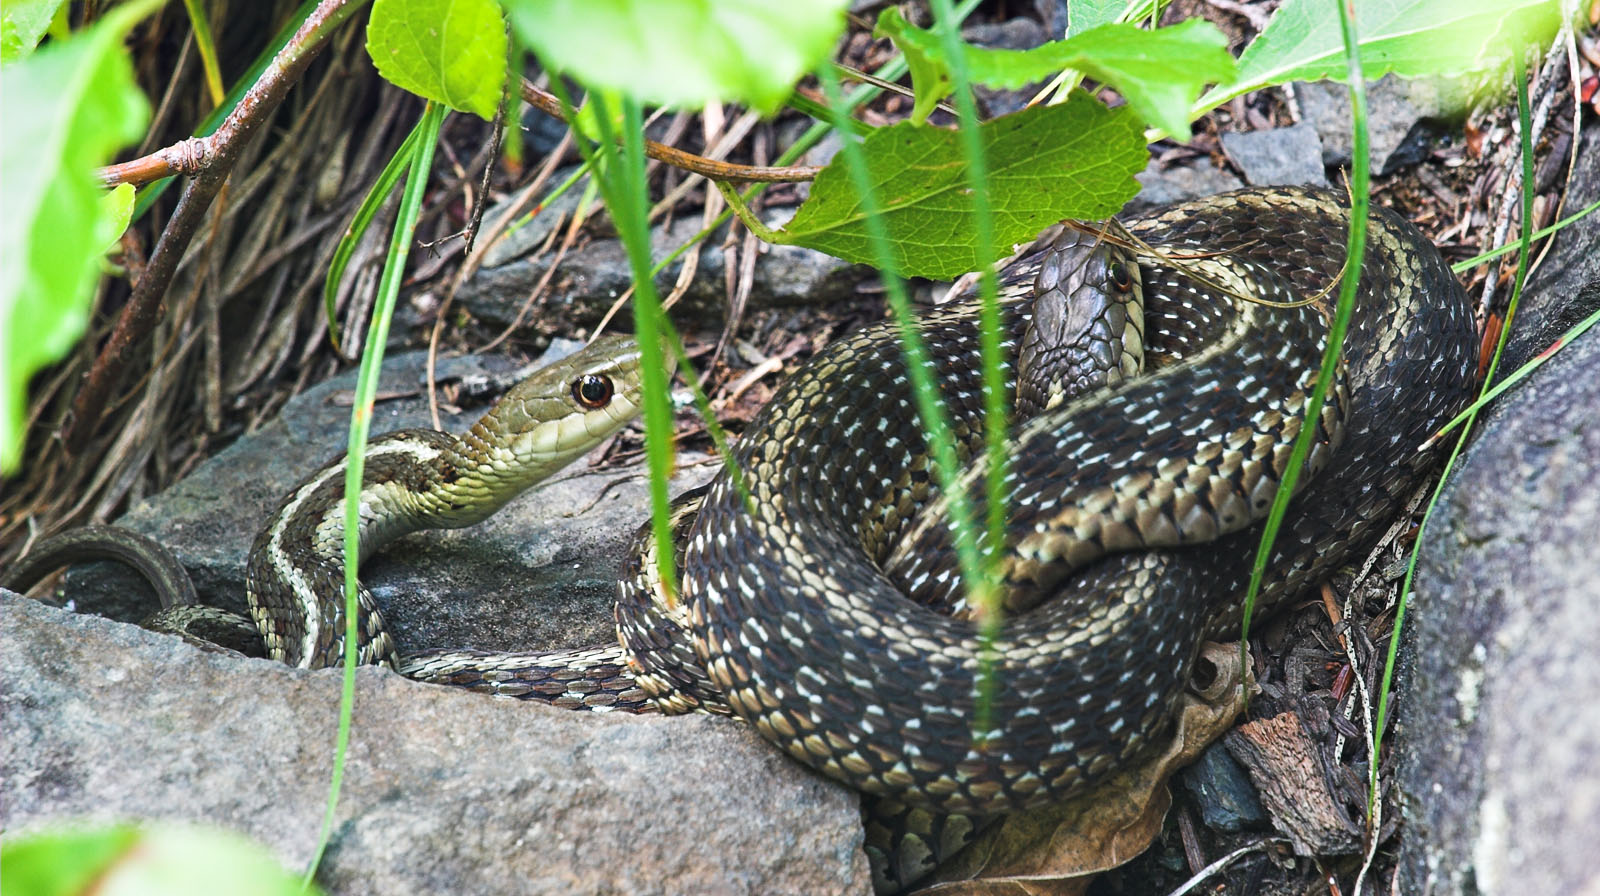 Two garter snakes rest on the warm rocks alongside a path through a trout stream gorge. From Enfield Creek in New York.